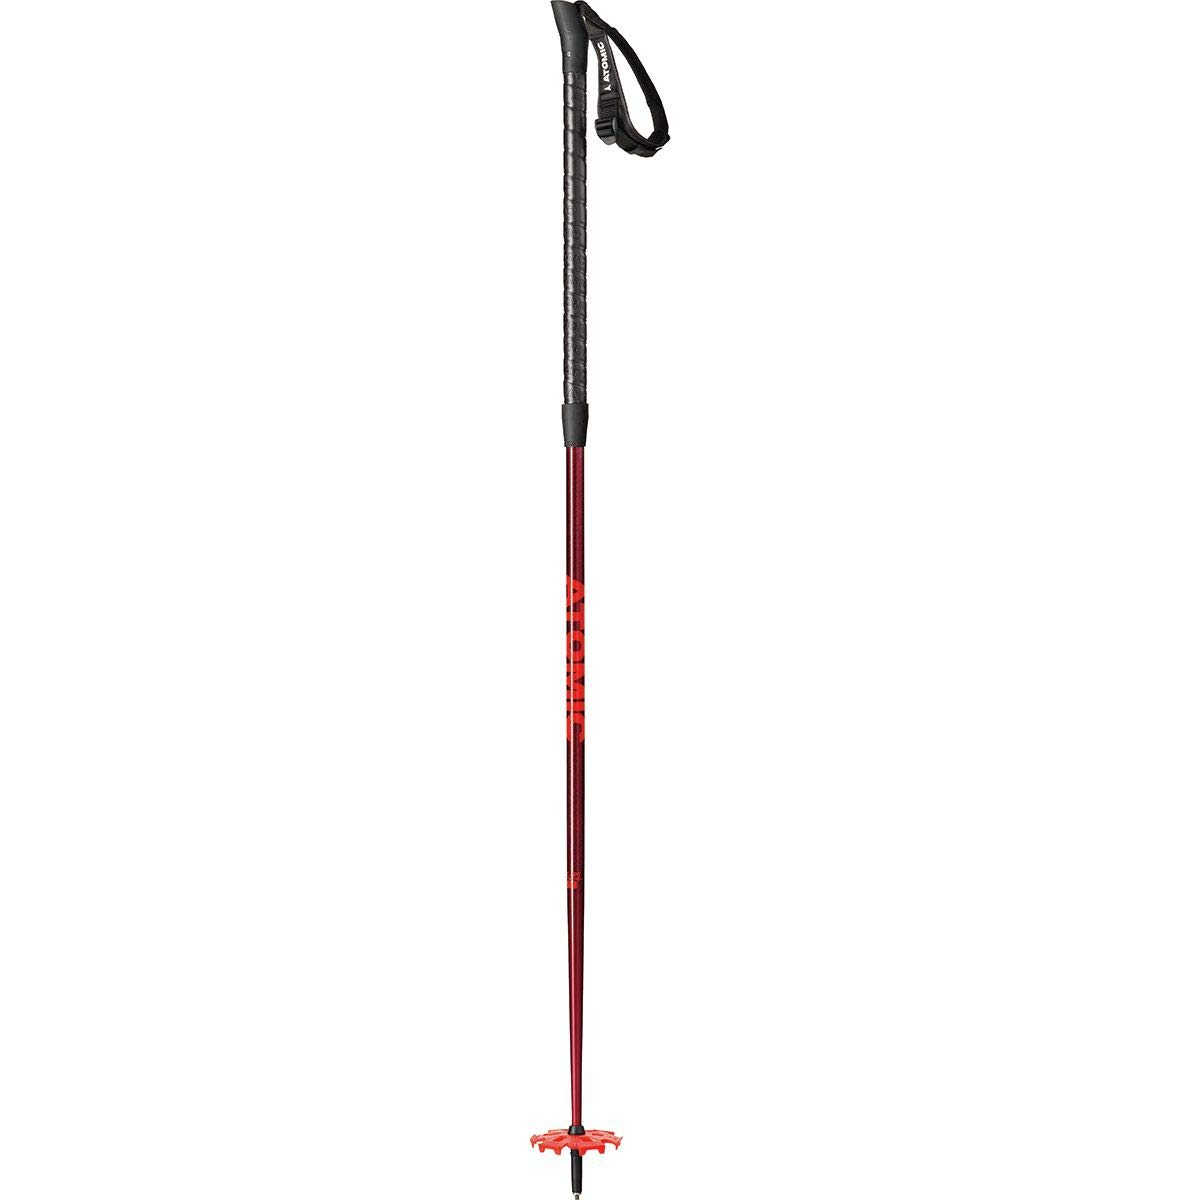 Atomic BCT Freeride SQS Ski Poles Red/Red, 130cm by Atomic